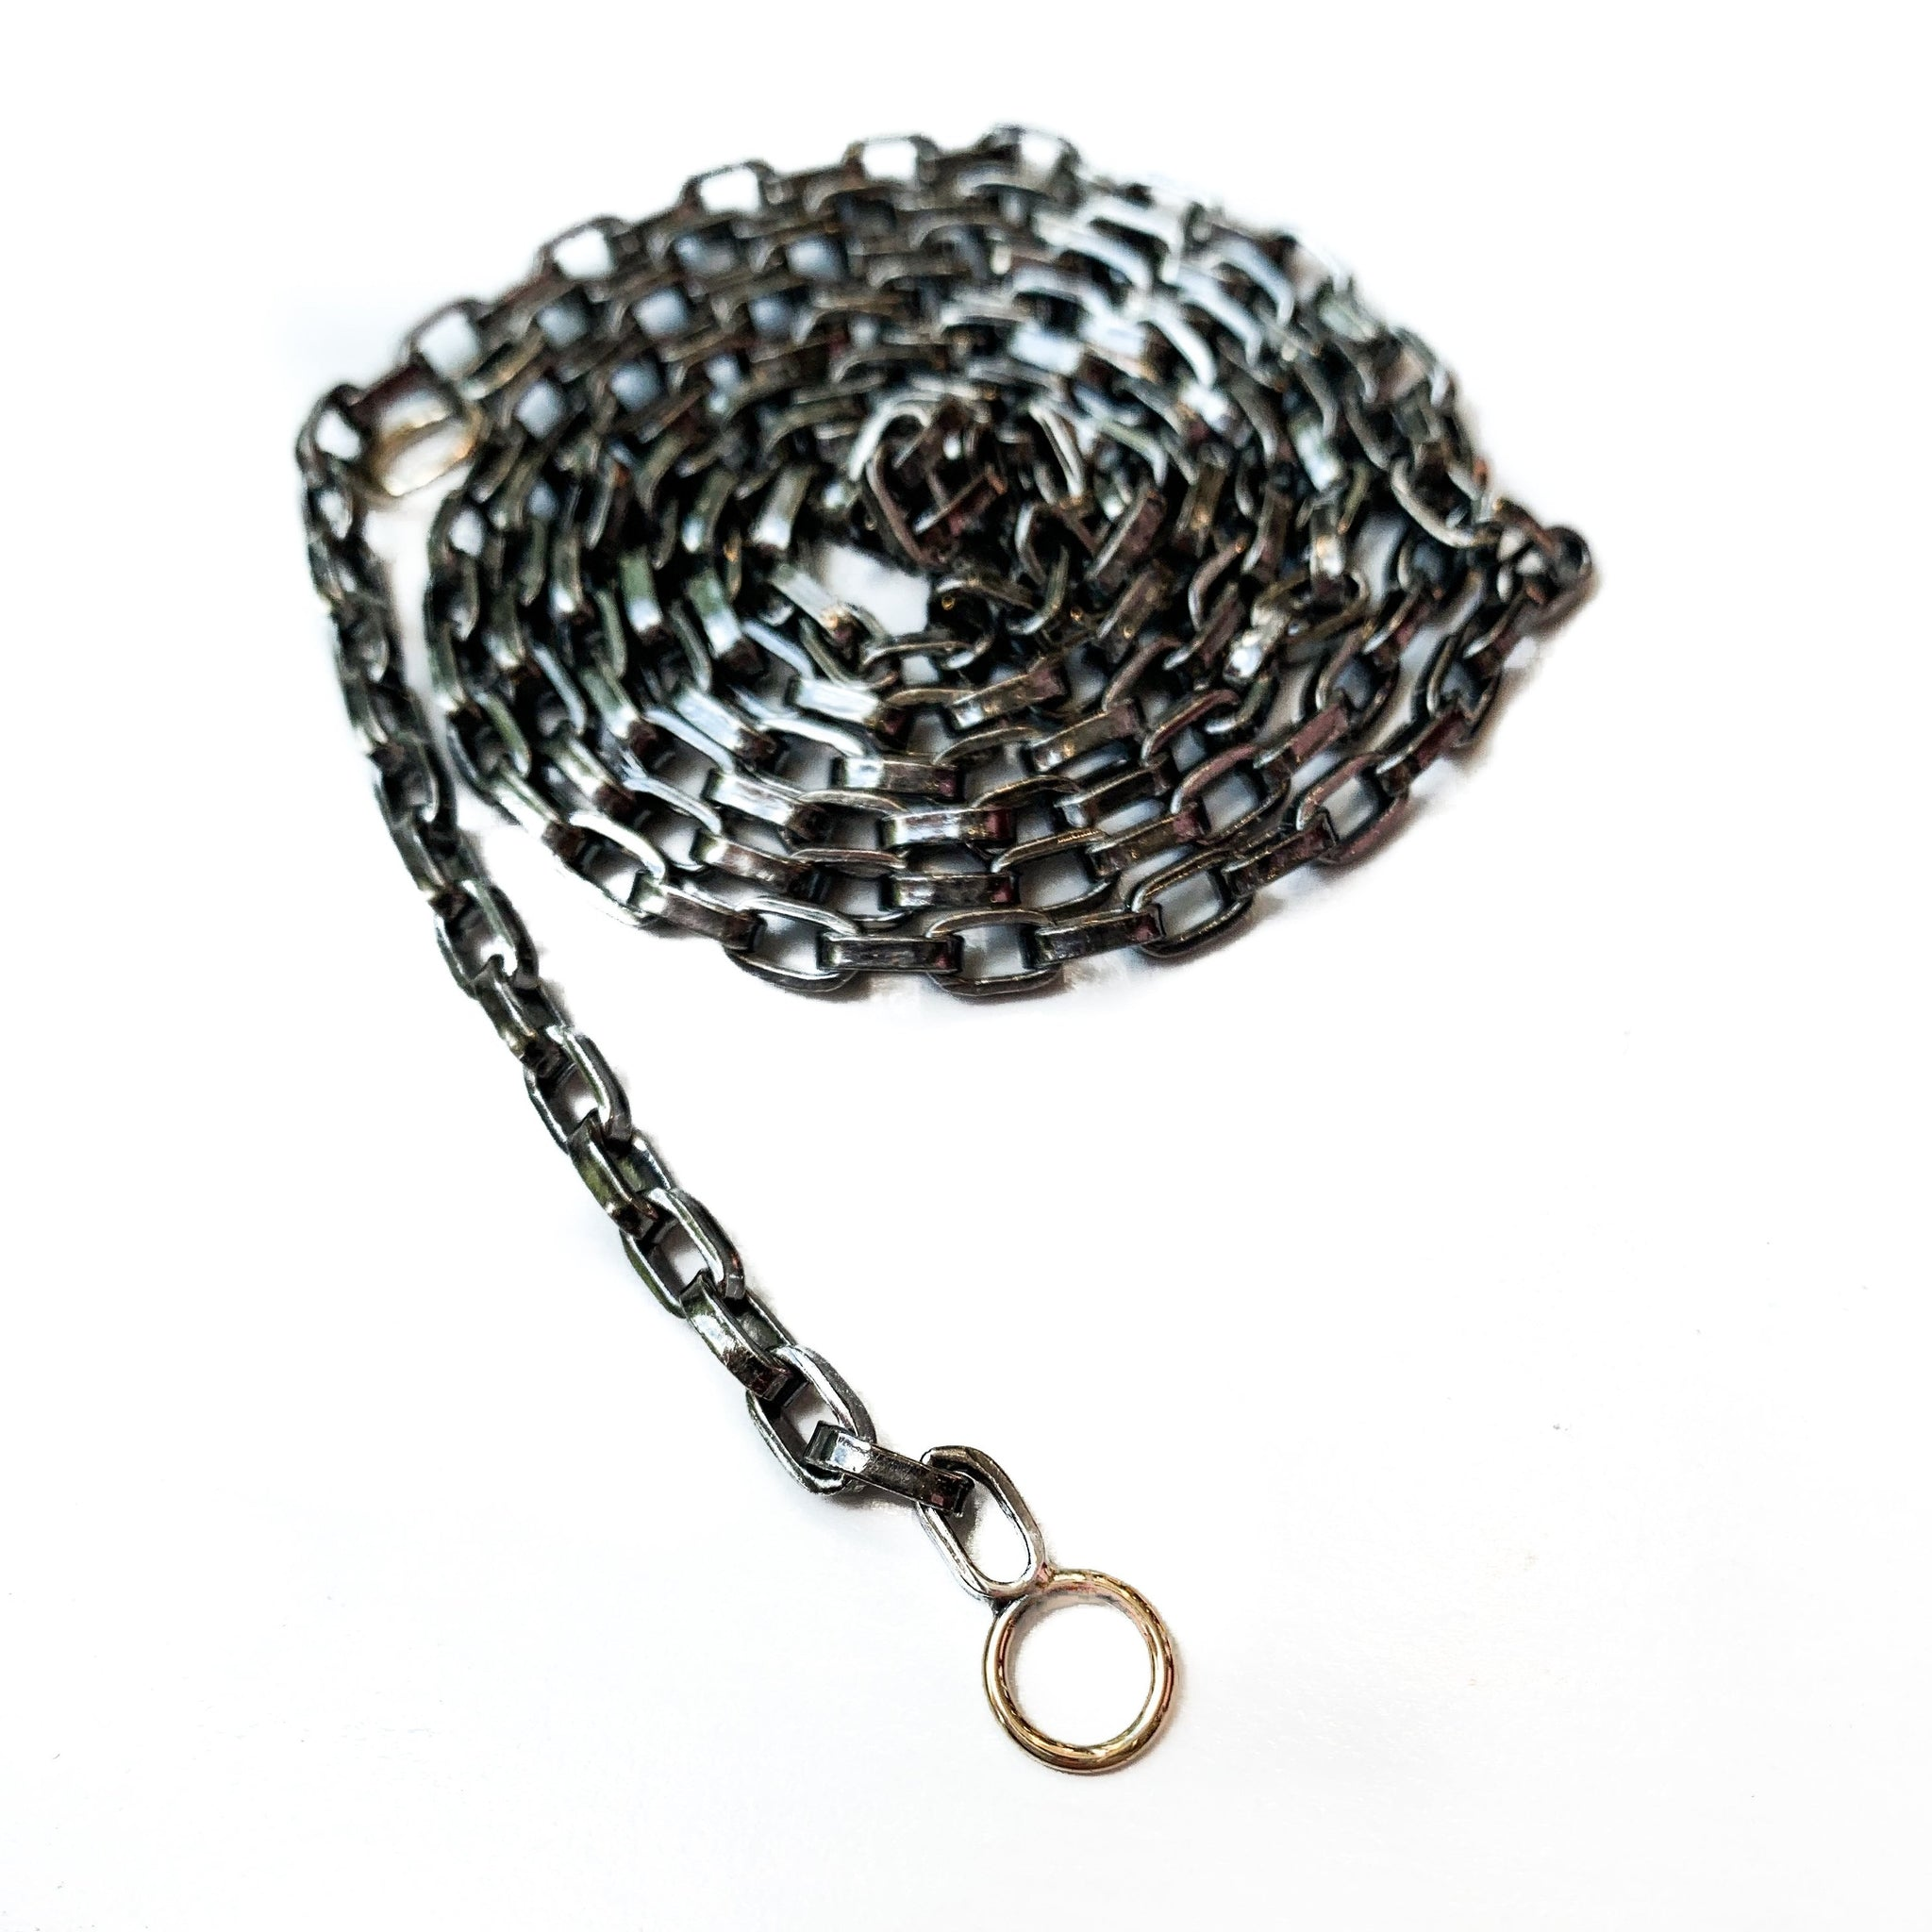 Blackened Silver Biker Chain